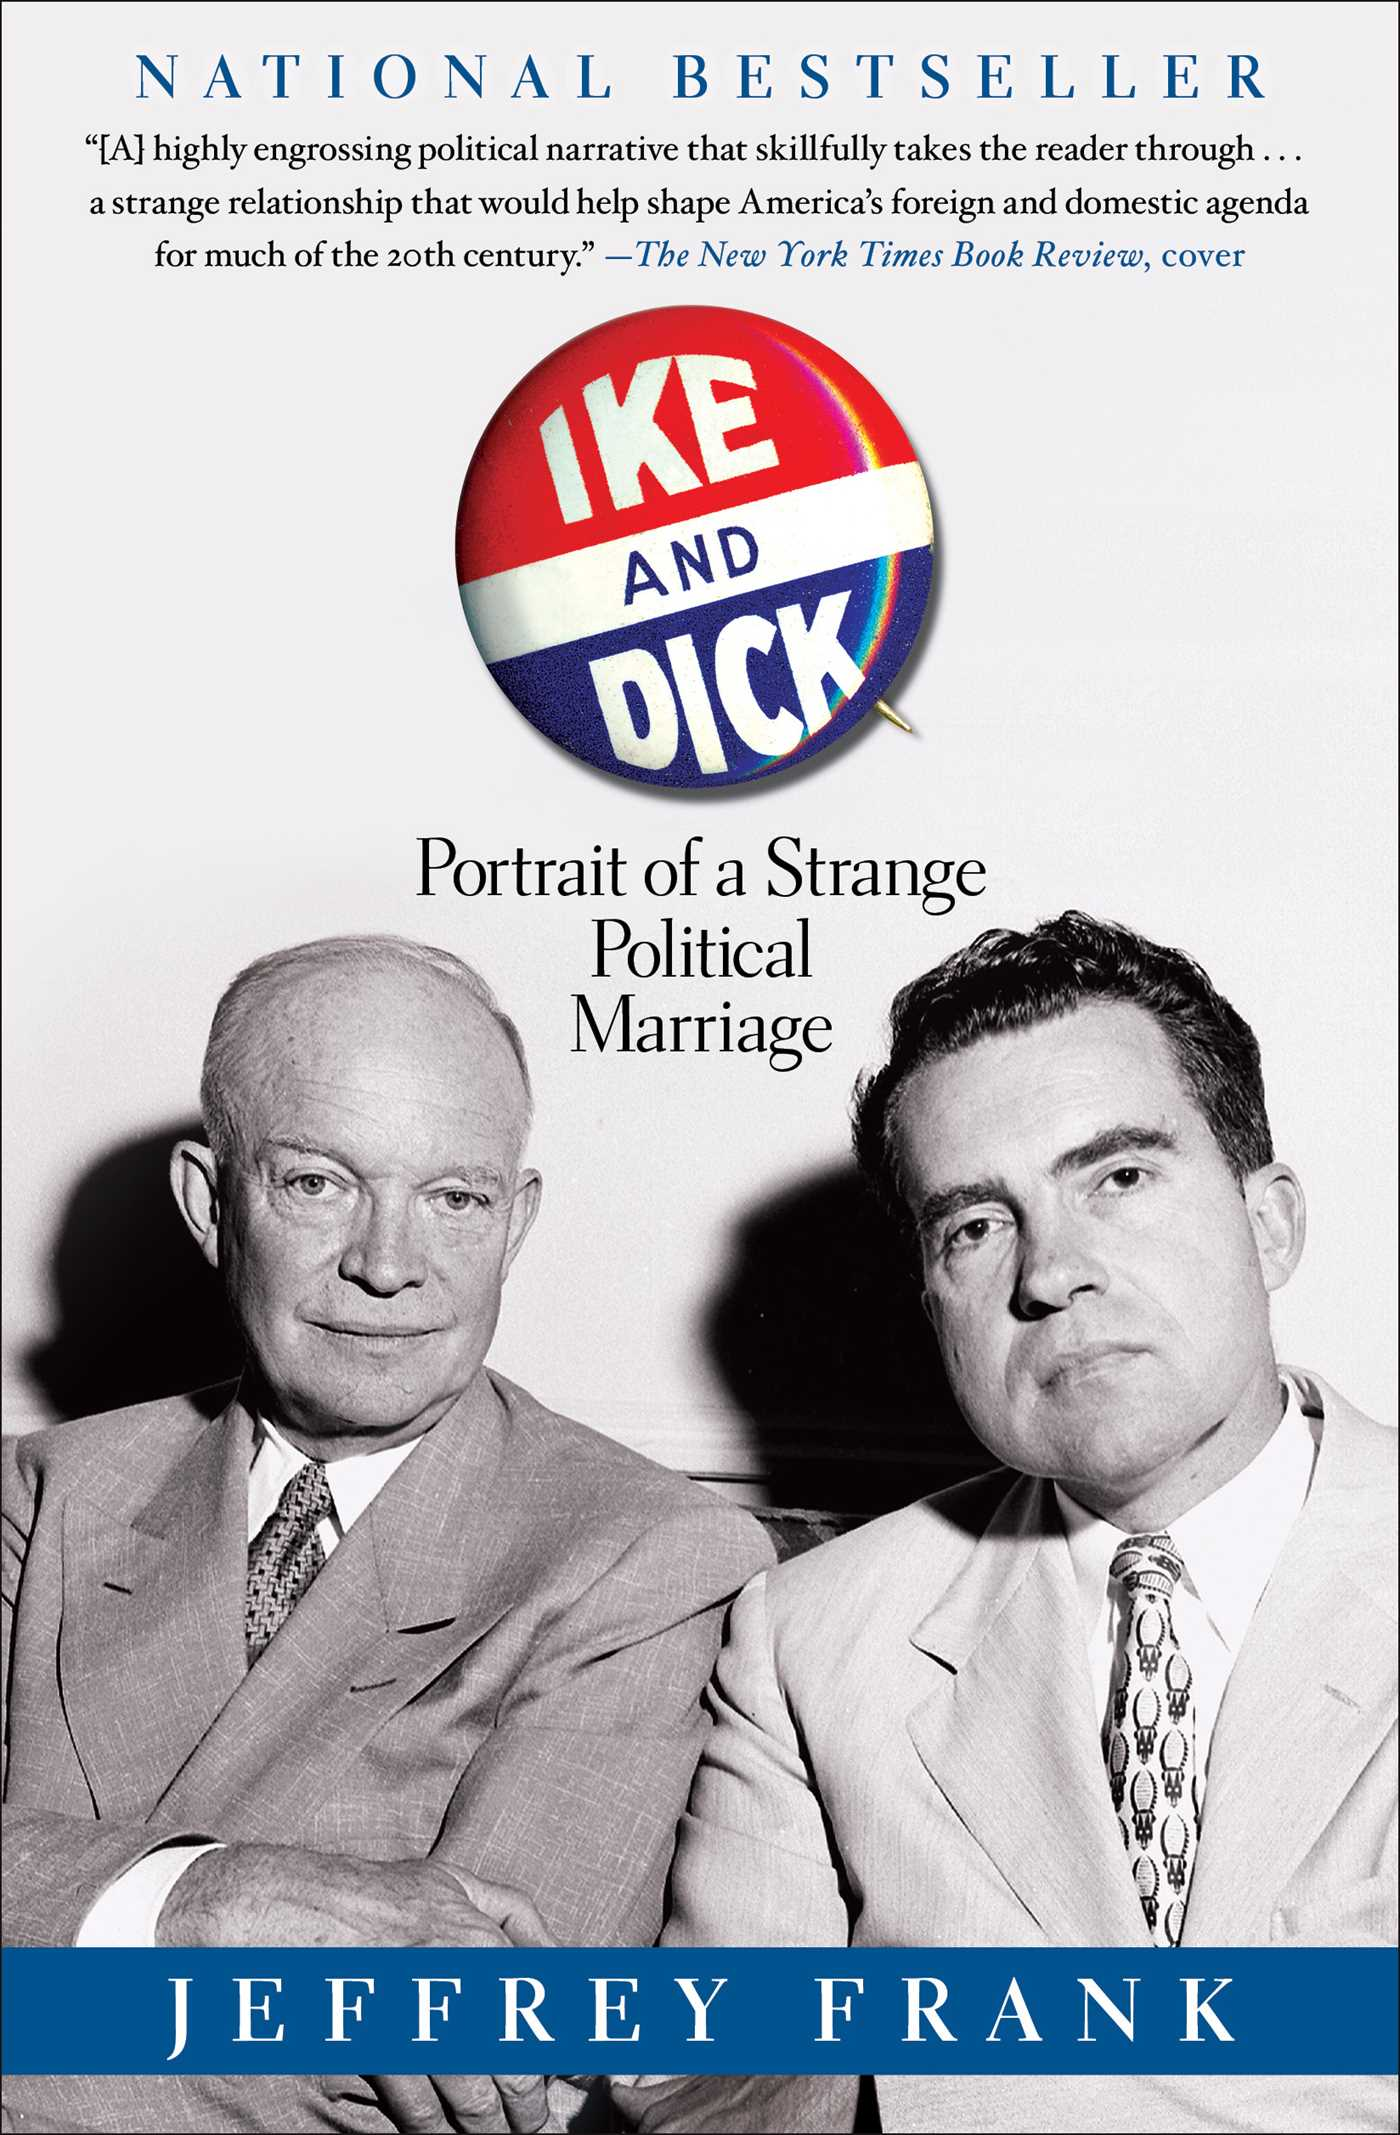 Ike-and-dick-9781416588207_hr